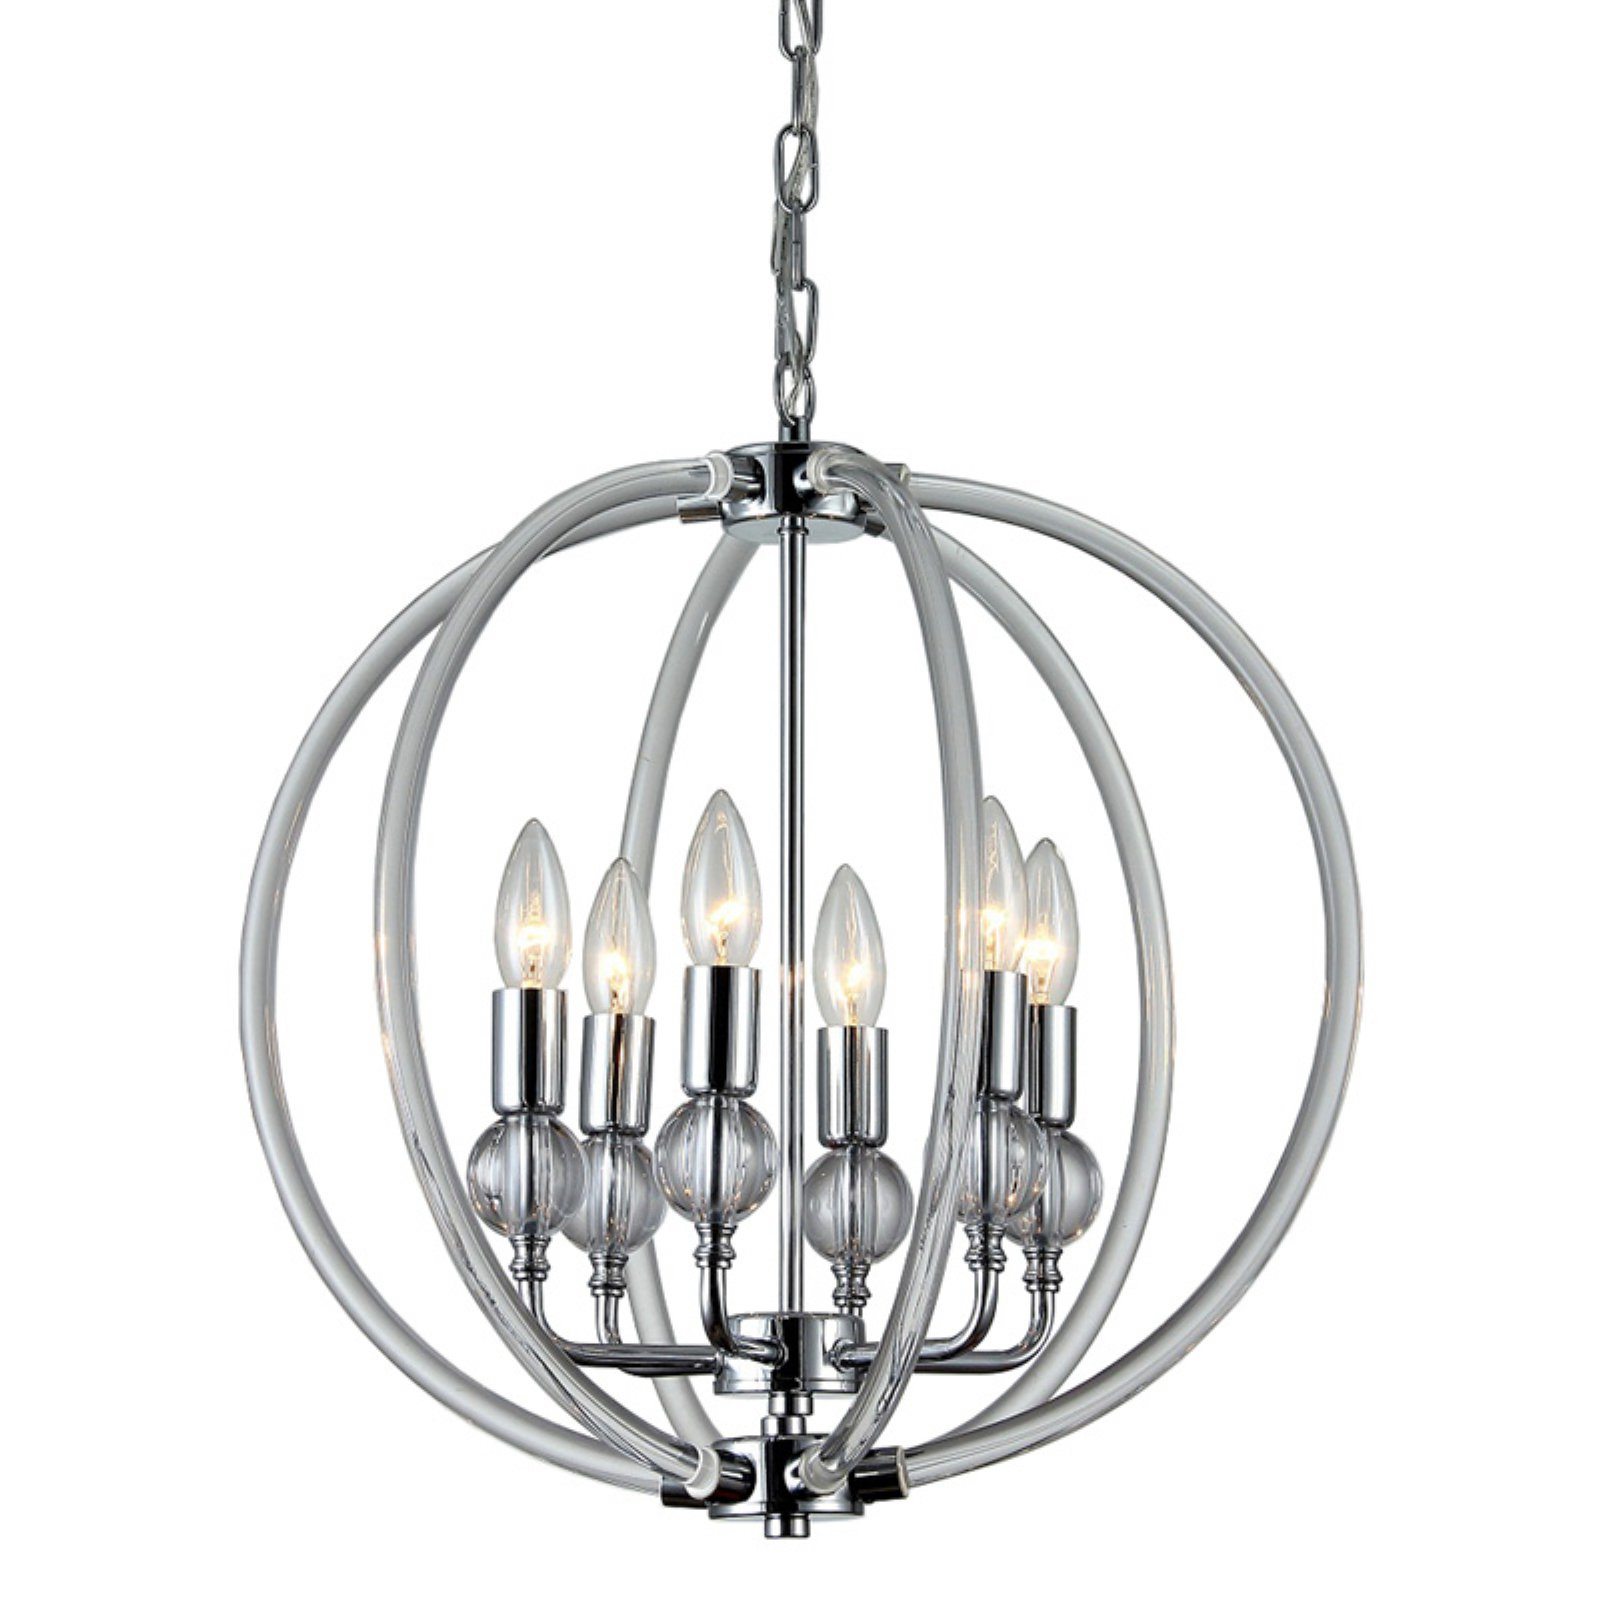 Fashionable Warehouse Of Tiffany Cage Globe Chandelier (View 6 of 20)